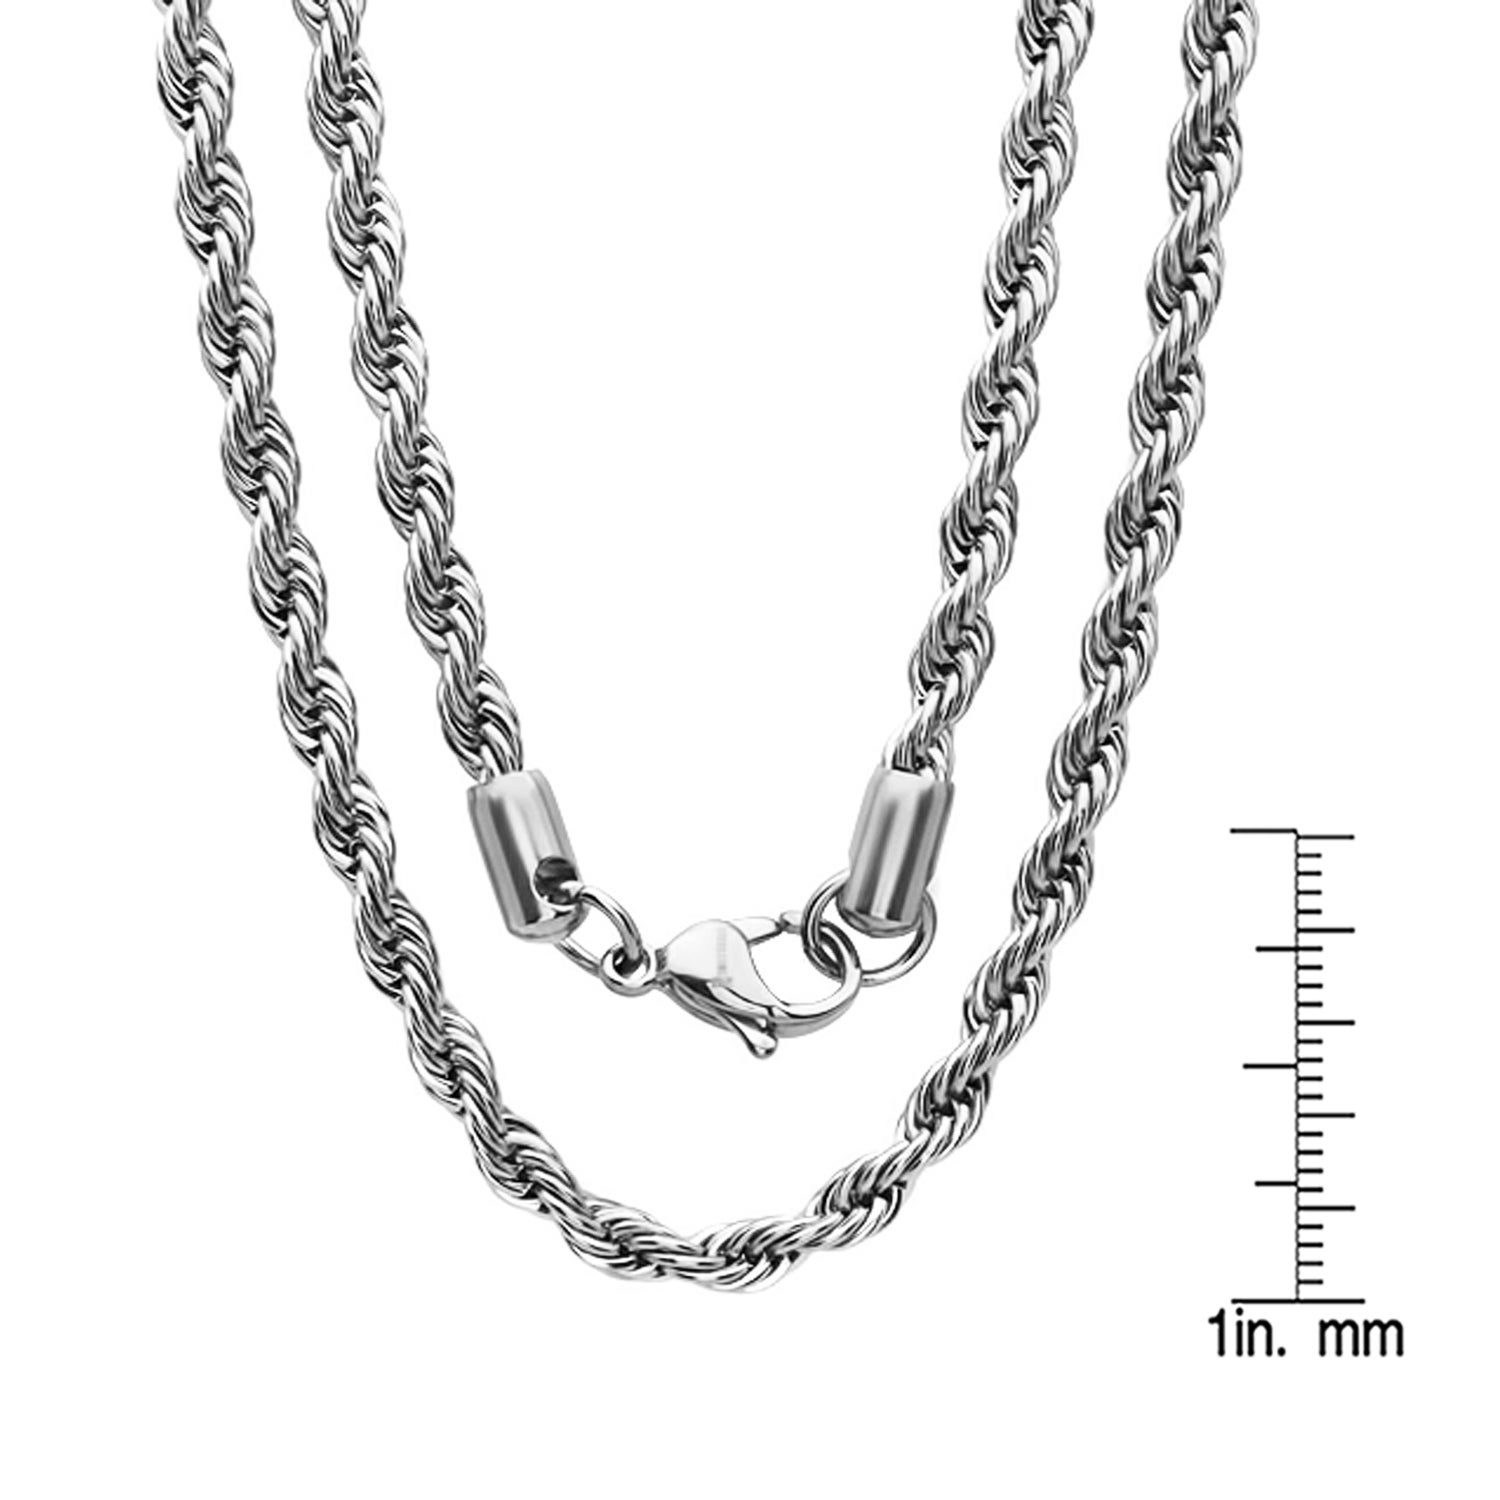 Shop Men s Thick Stainless Steel Rope Chain - On Sale - Free ... df43b08a445c